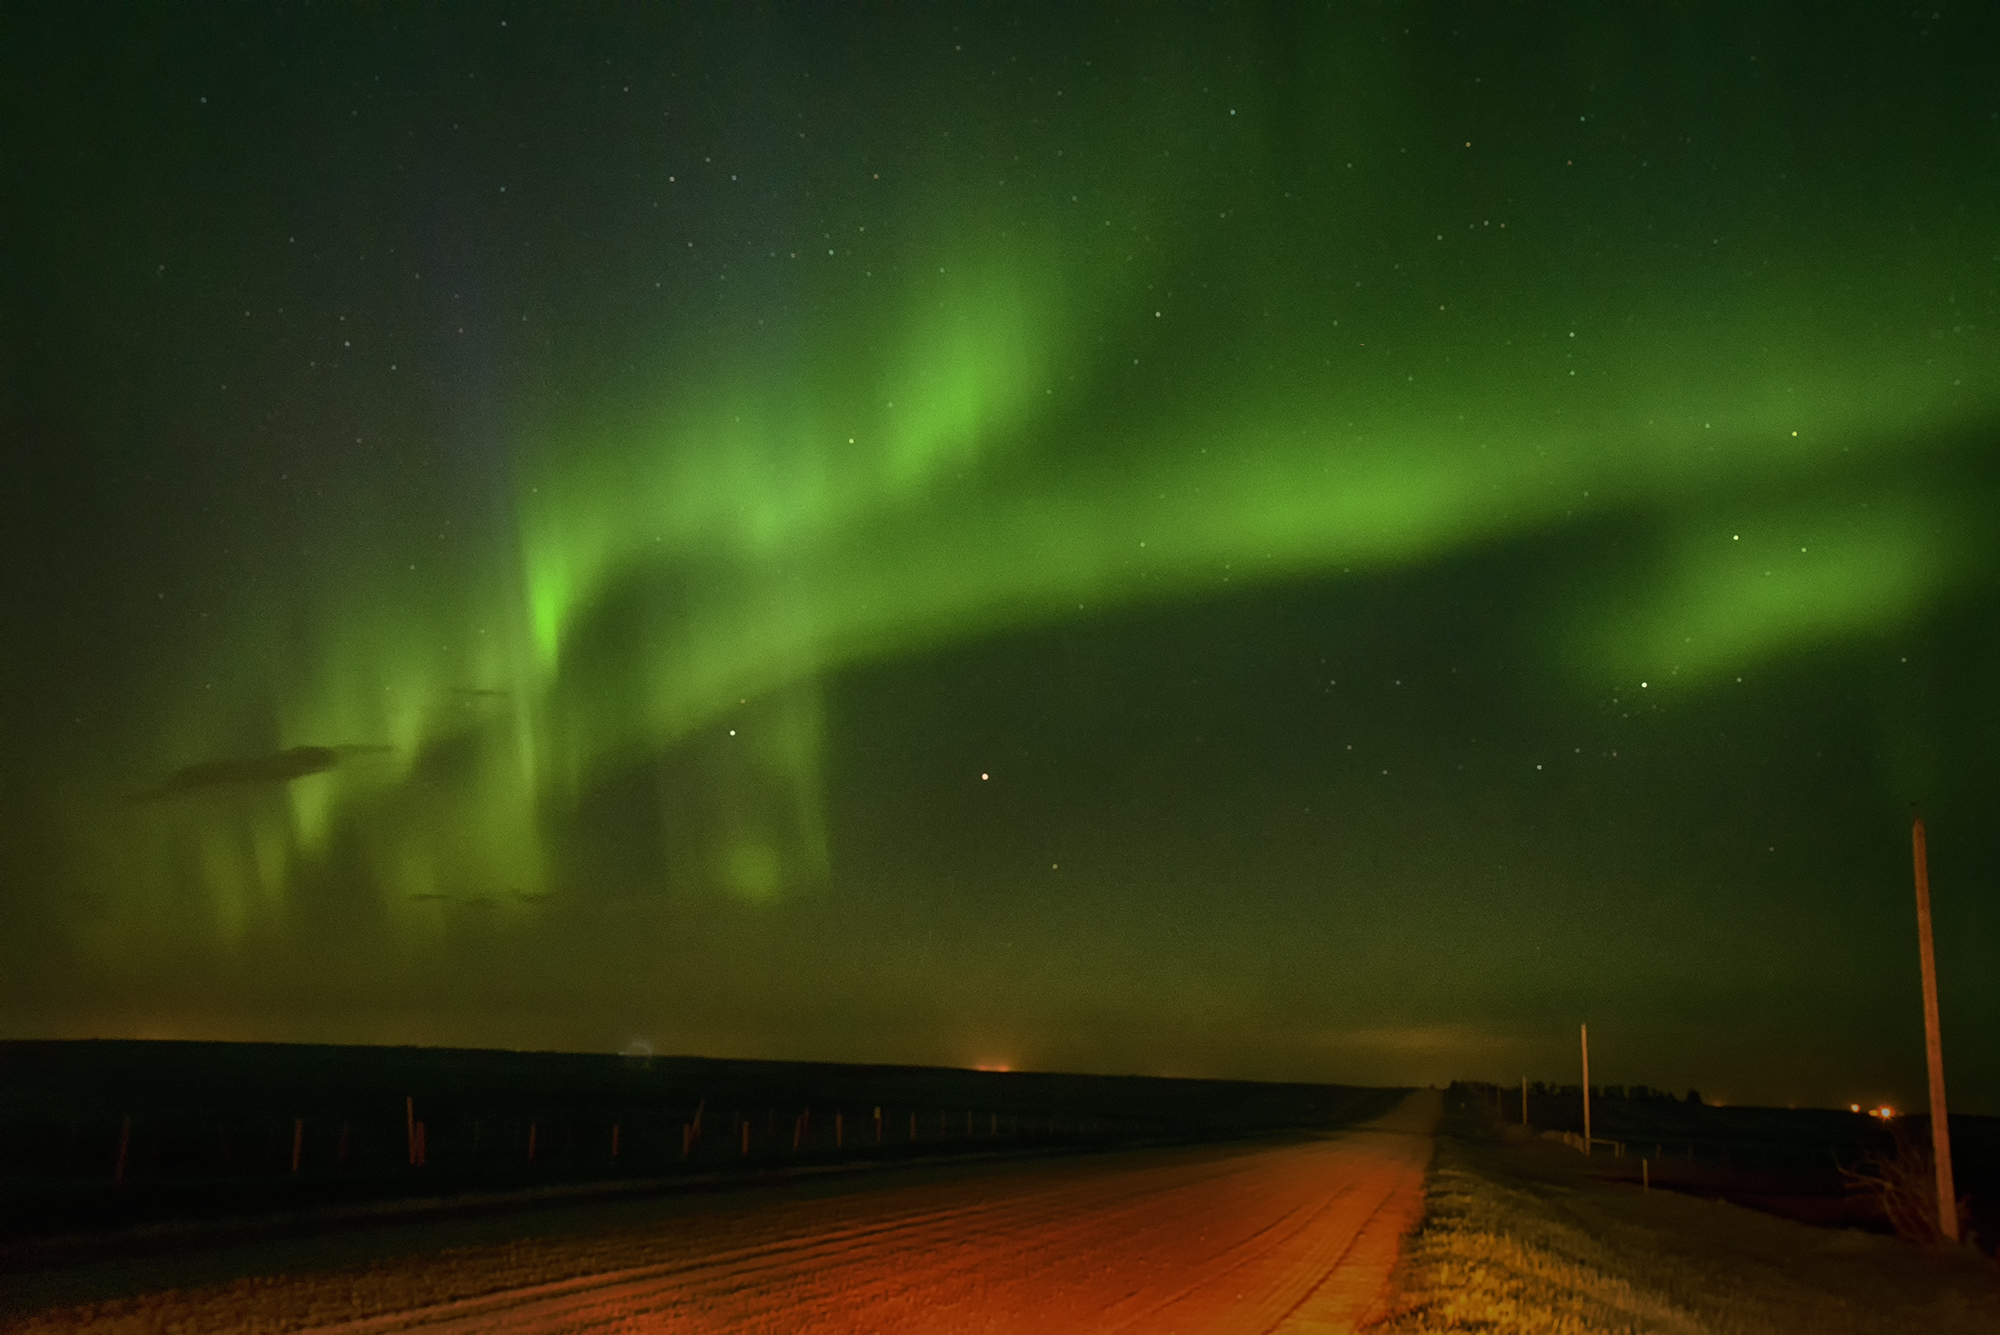 Example of a Photo of the Aurora Borealis Shot Using a DSLR